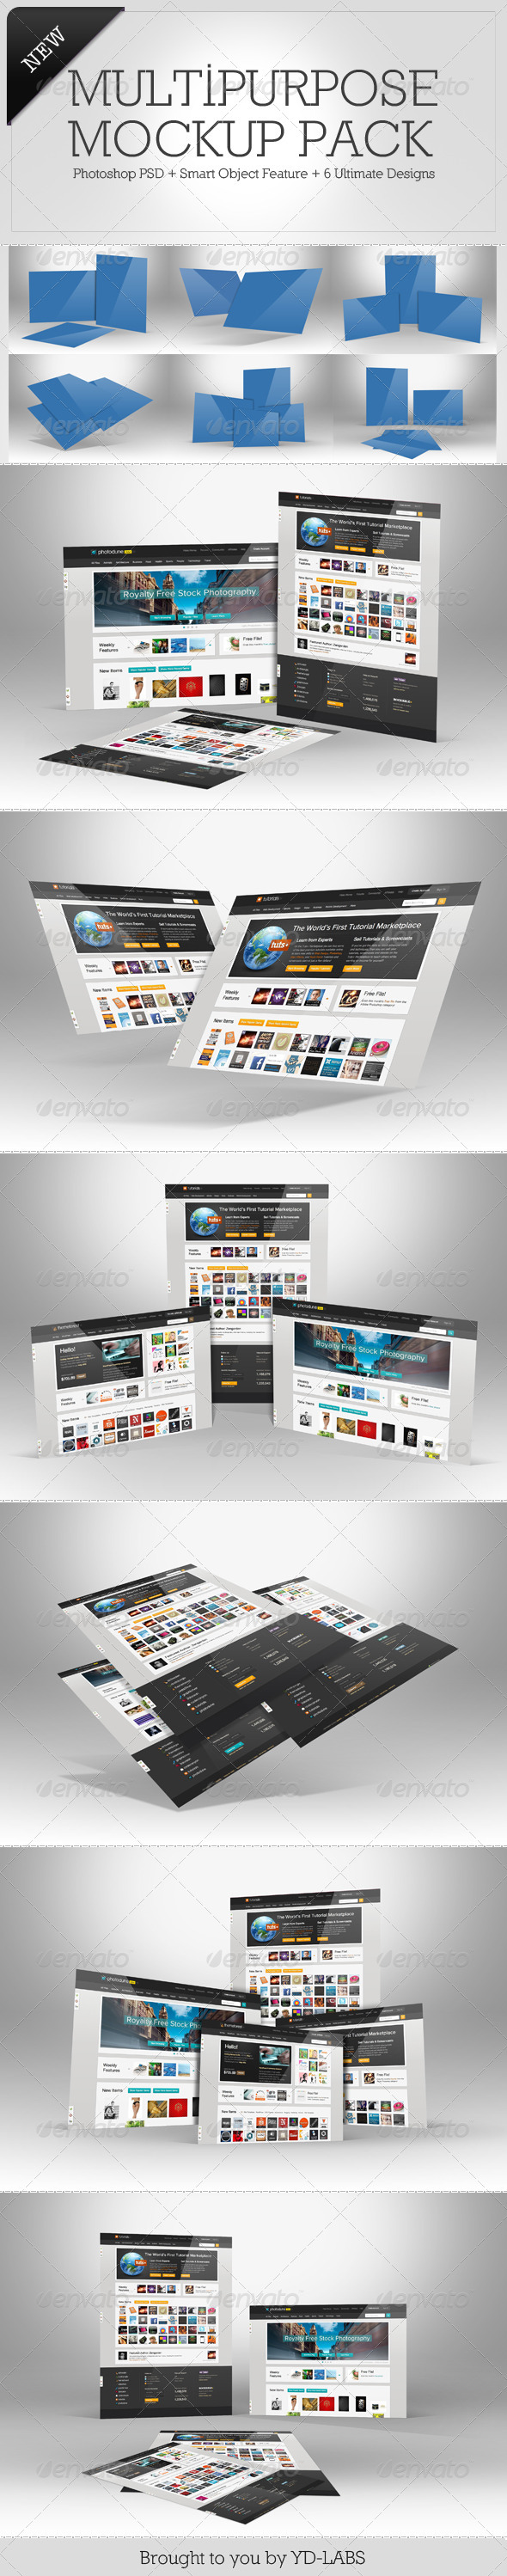 GraphicRiver Multipurpose Mockup Pack 4 4493790